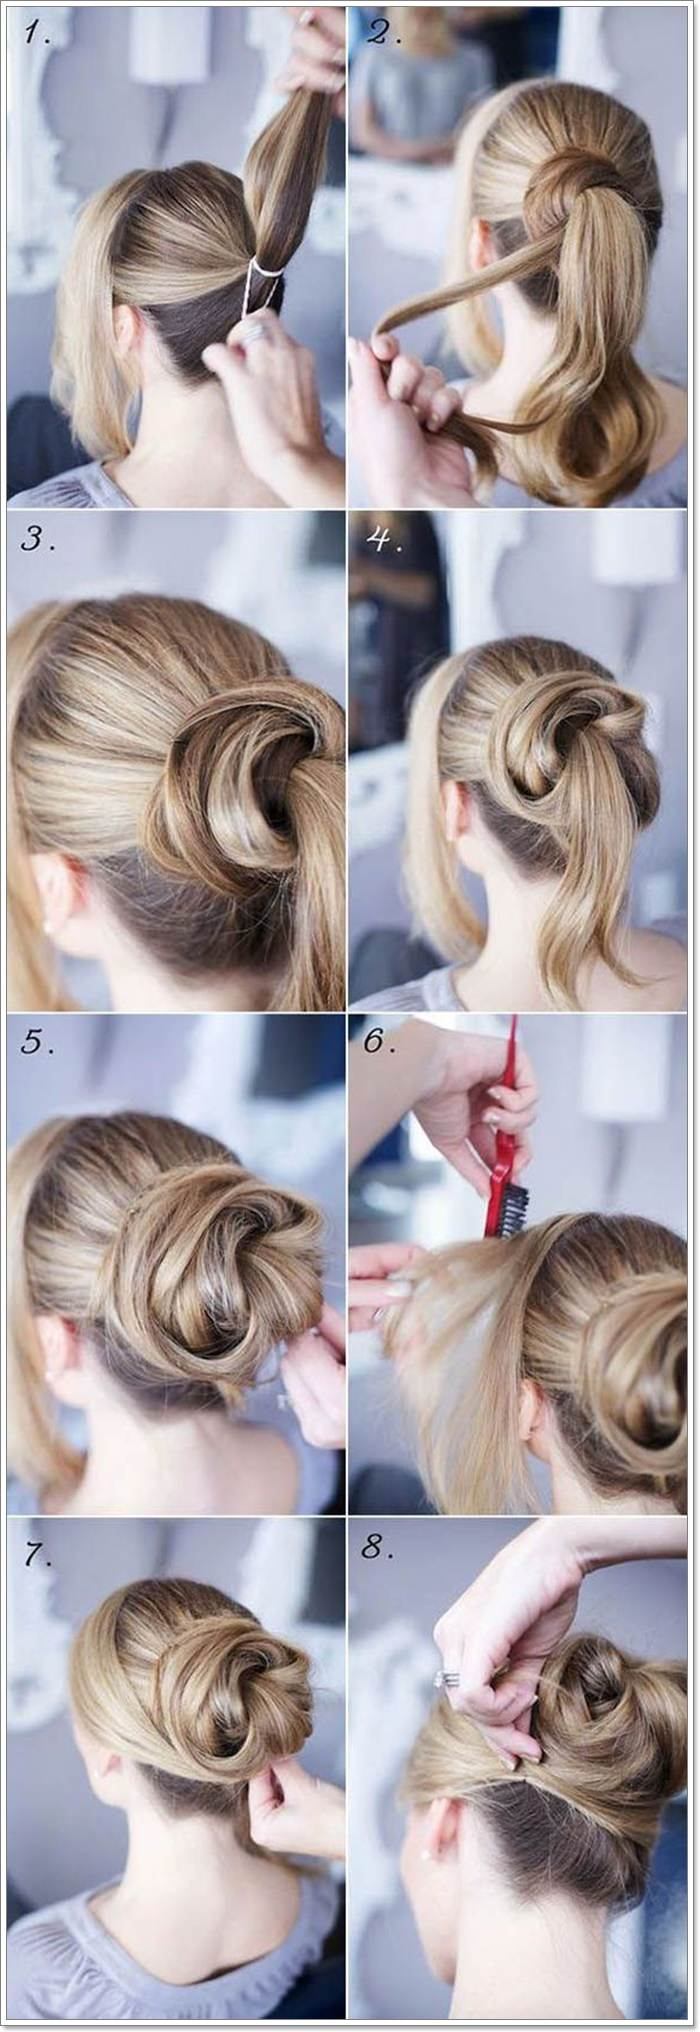 12 Quick And Easy Hairstyles For Your Hair